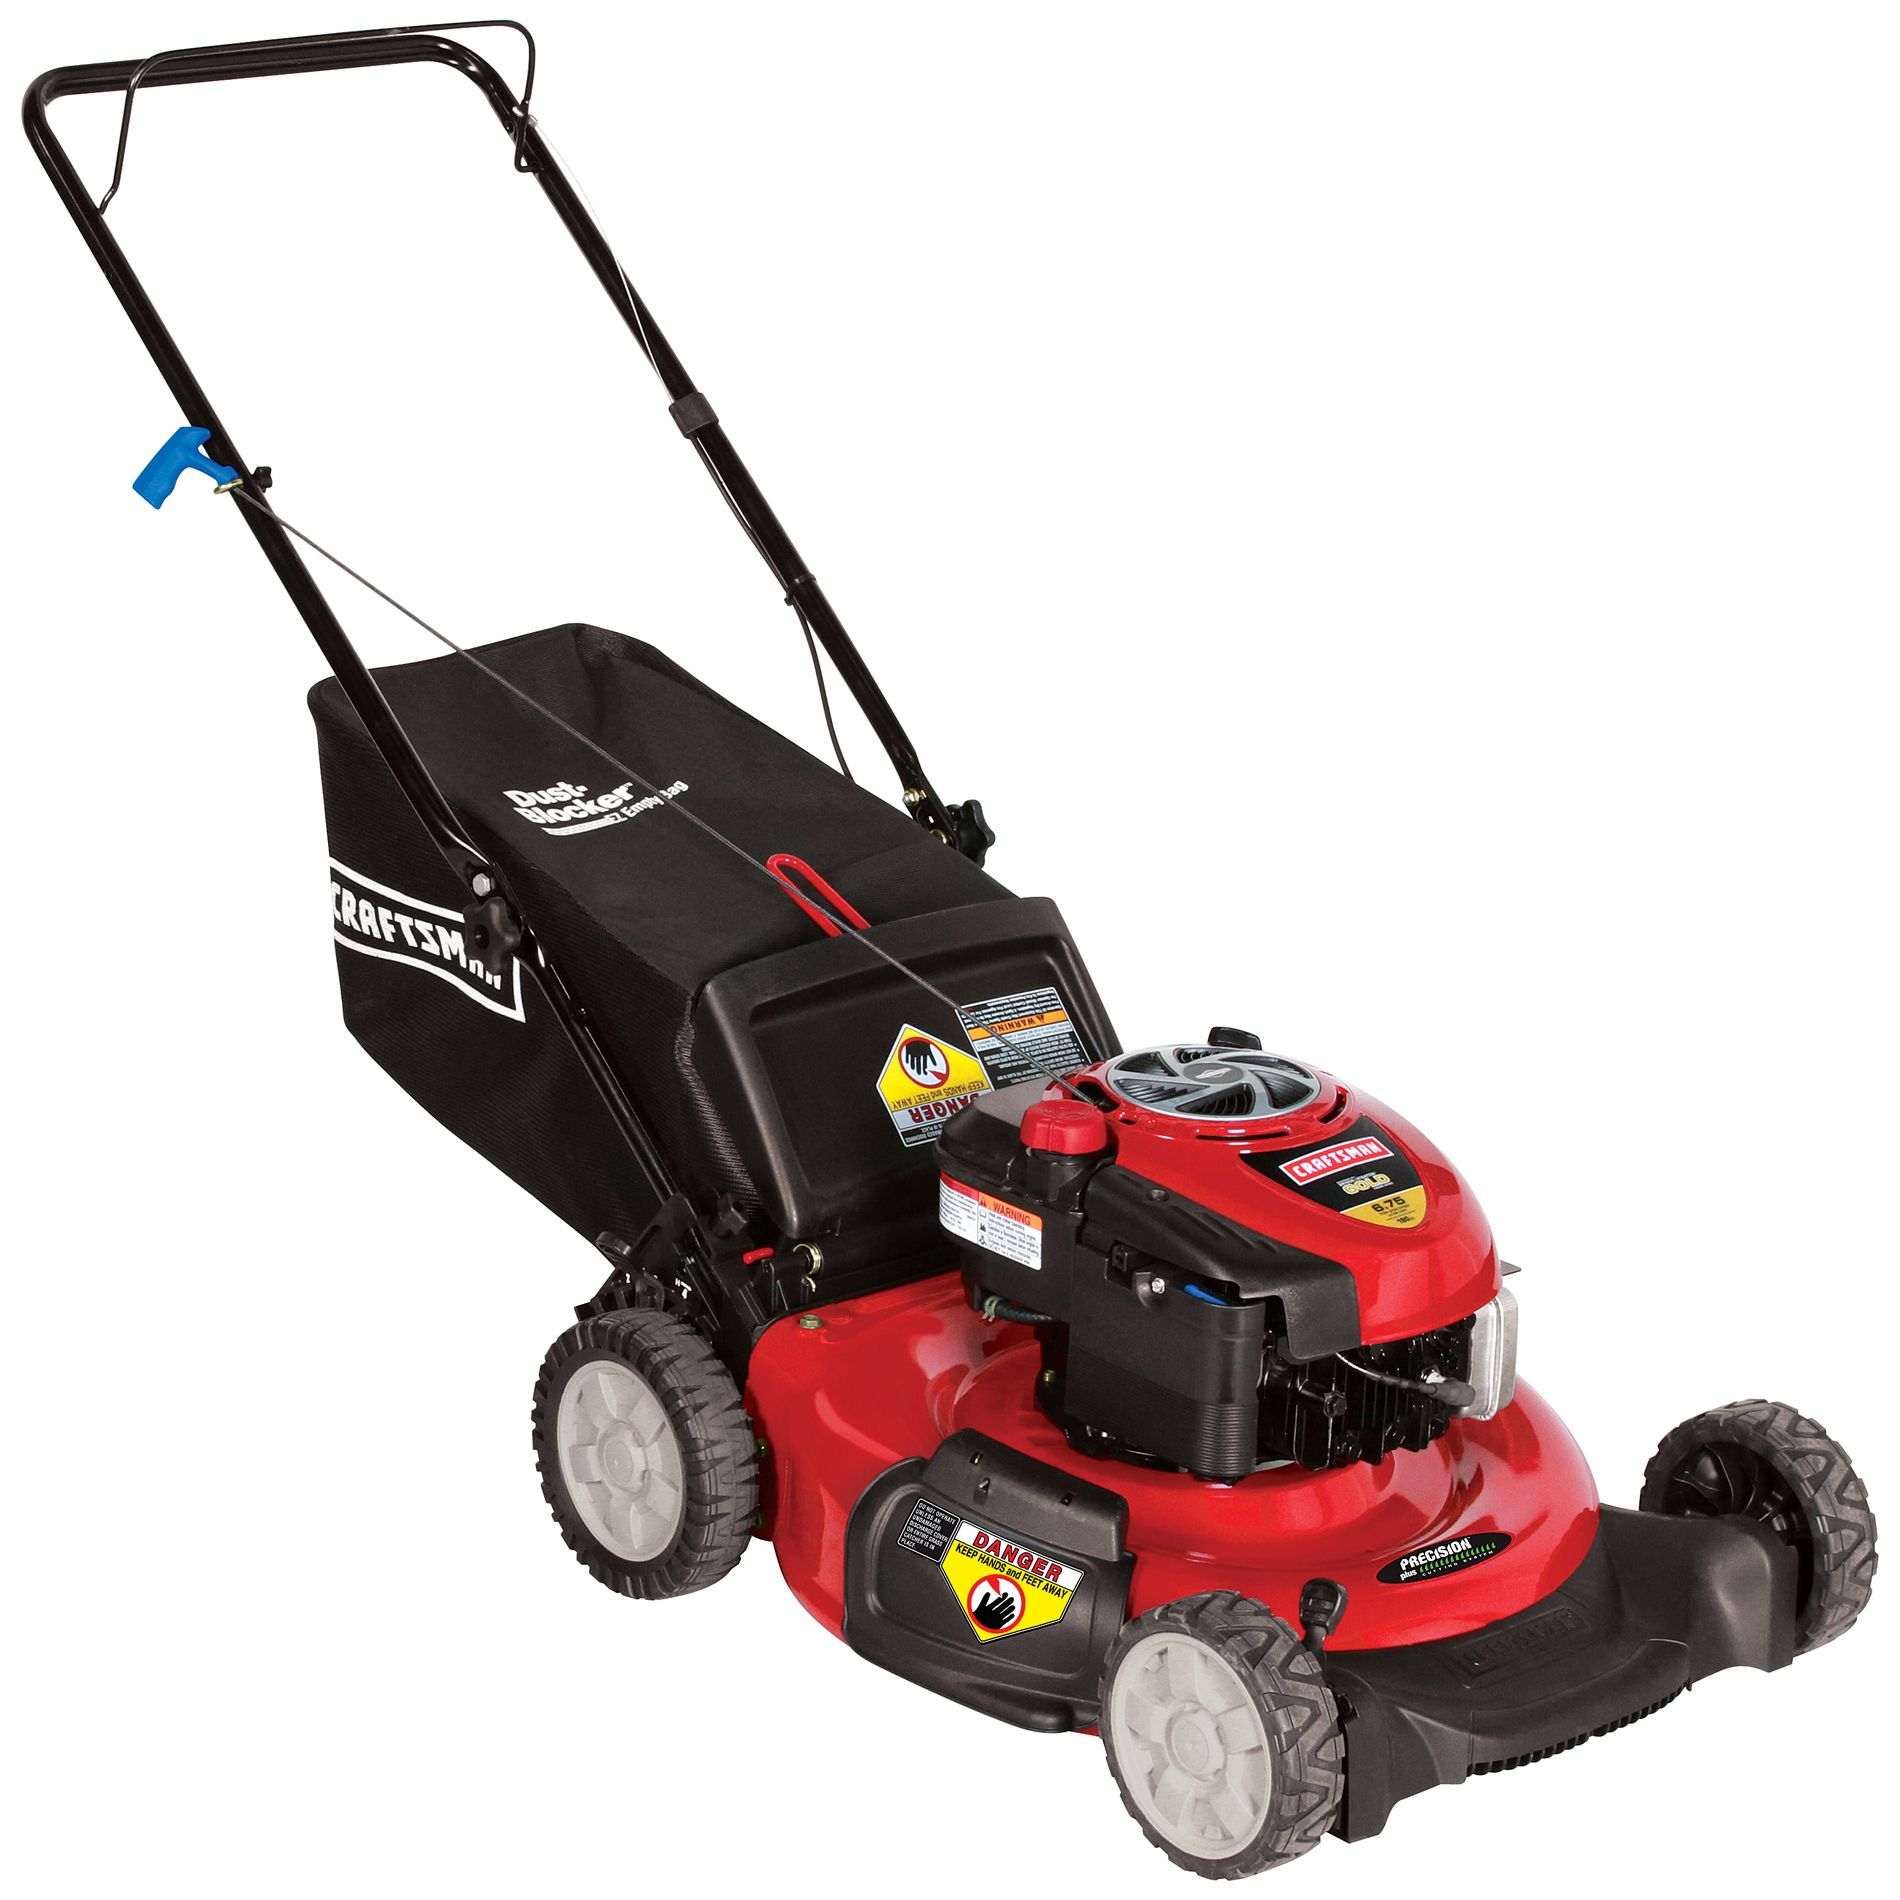 190cc* Low-Wheel Rear Bag Push Mower 50 States